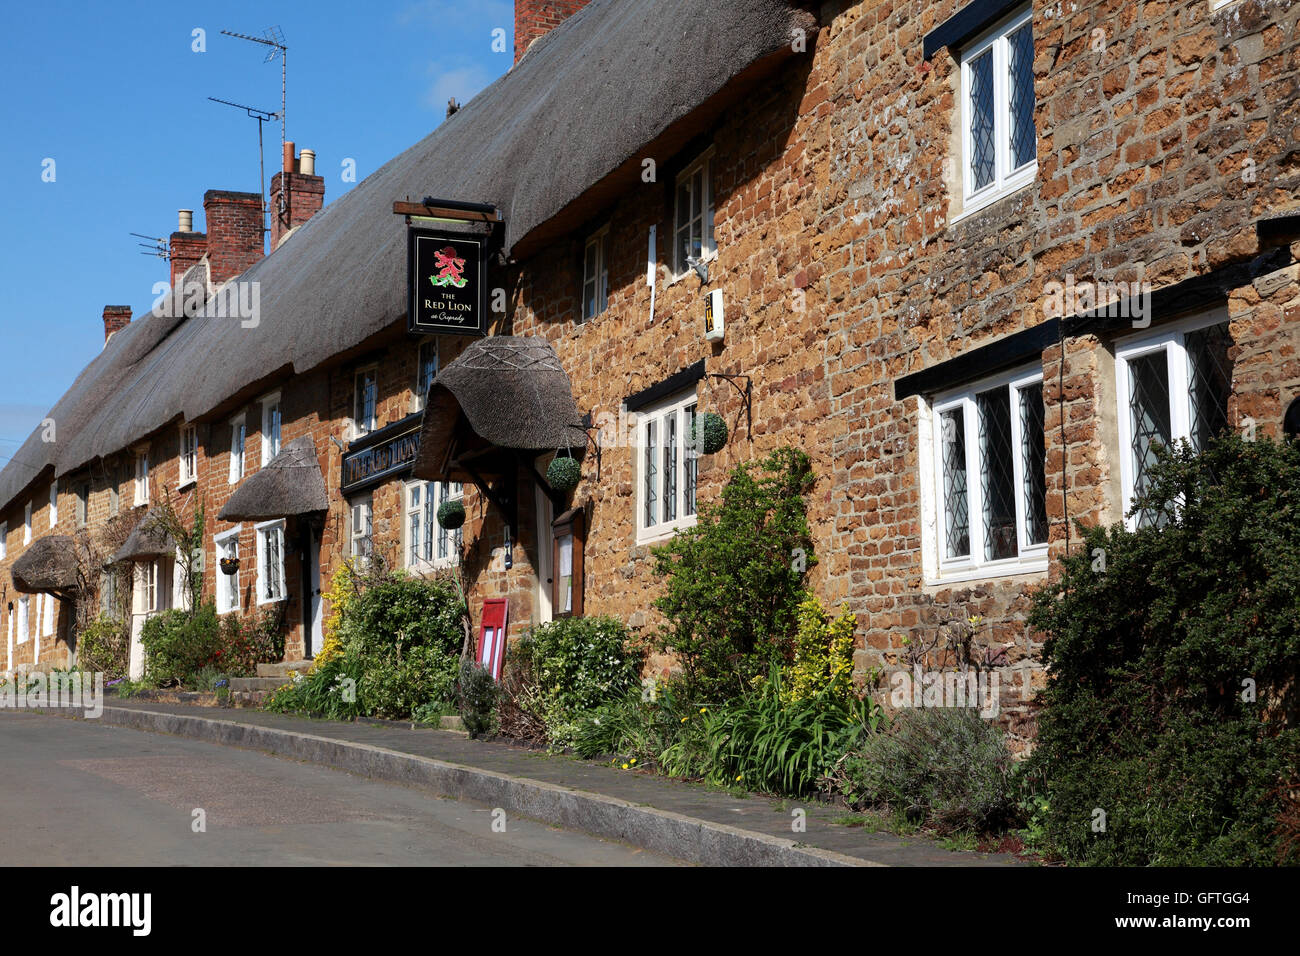 The Red Lion inn at Cropredy, Oxfordshire - Stock Image